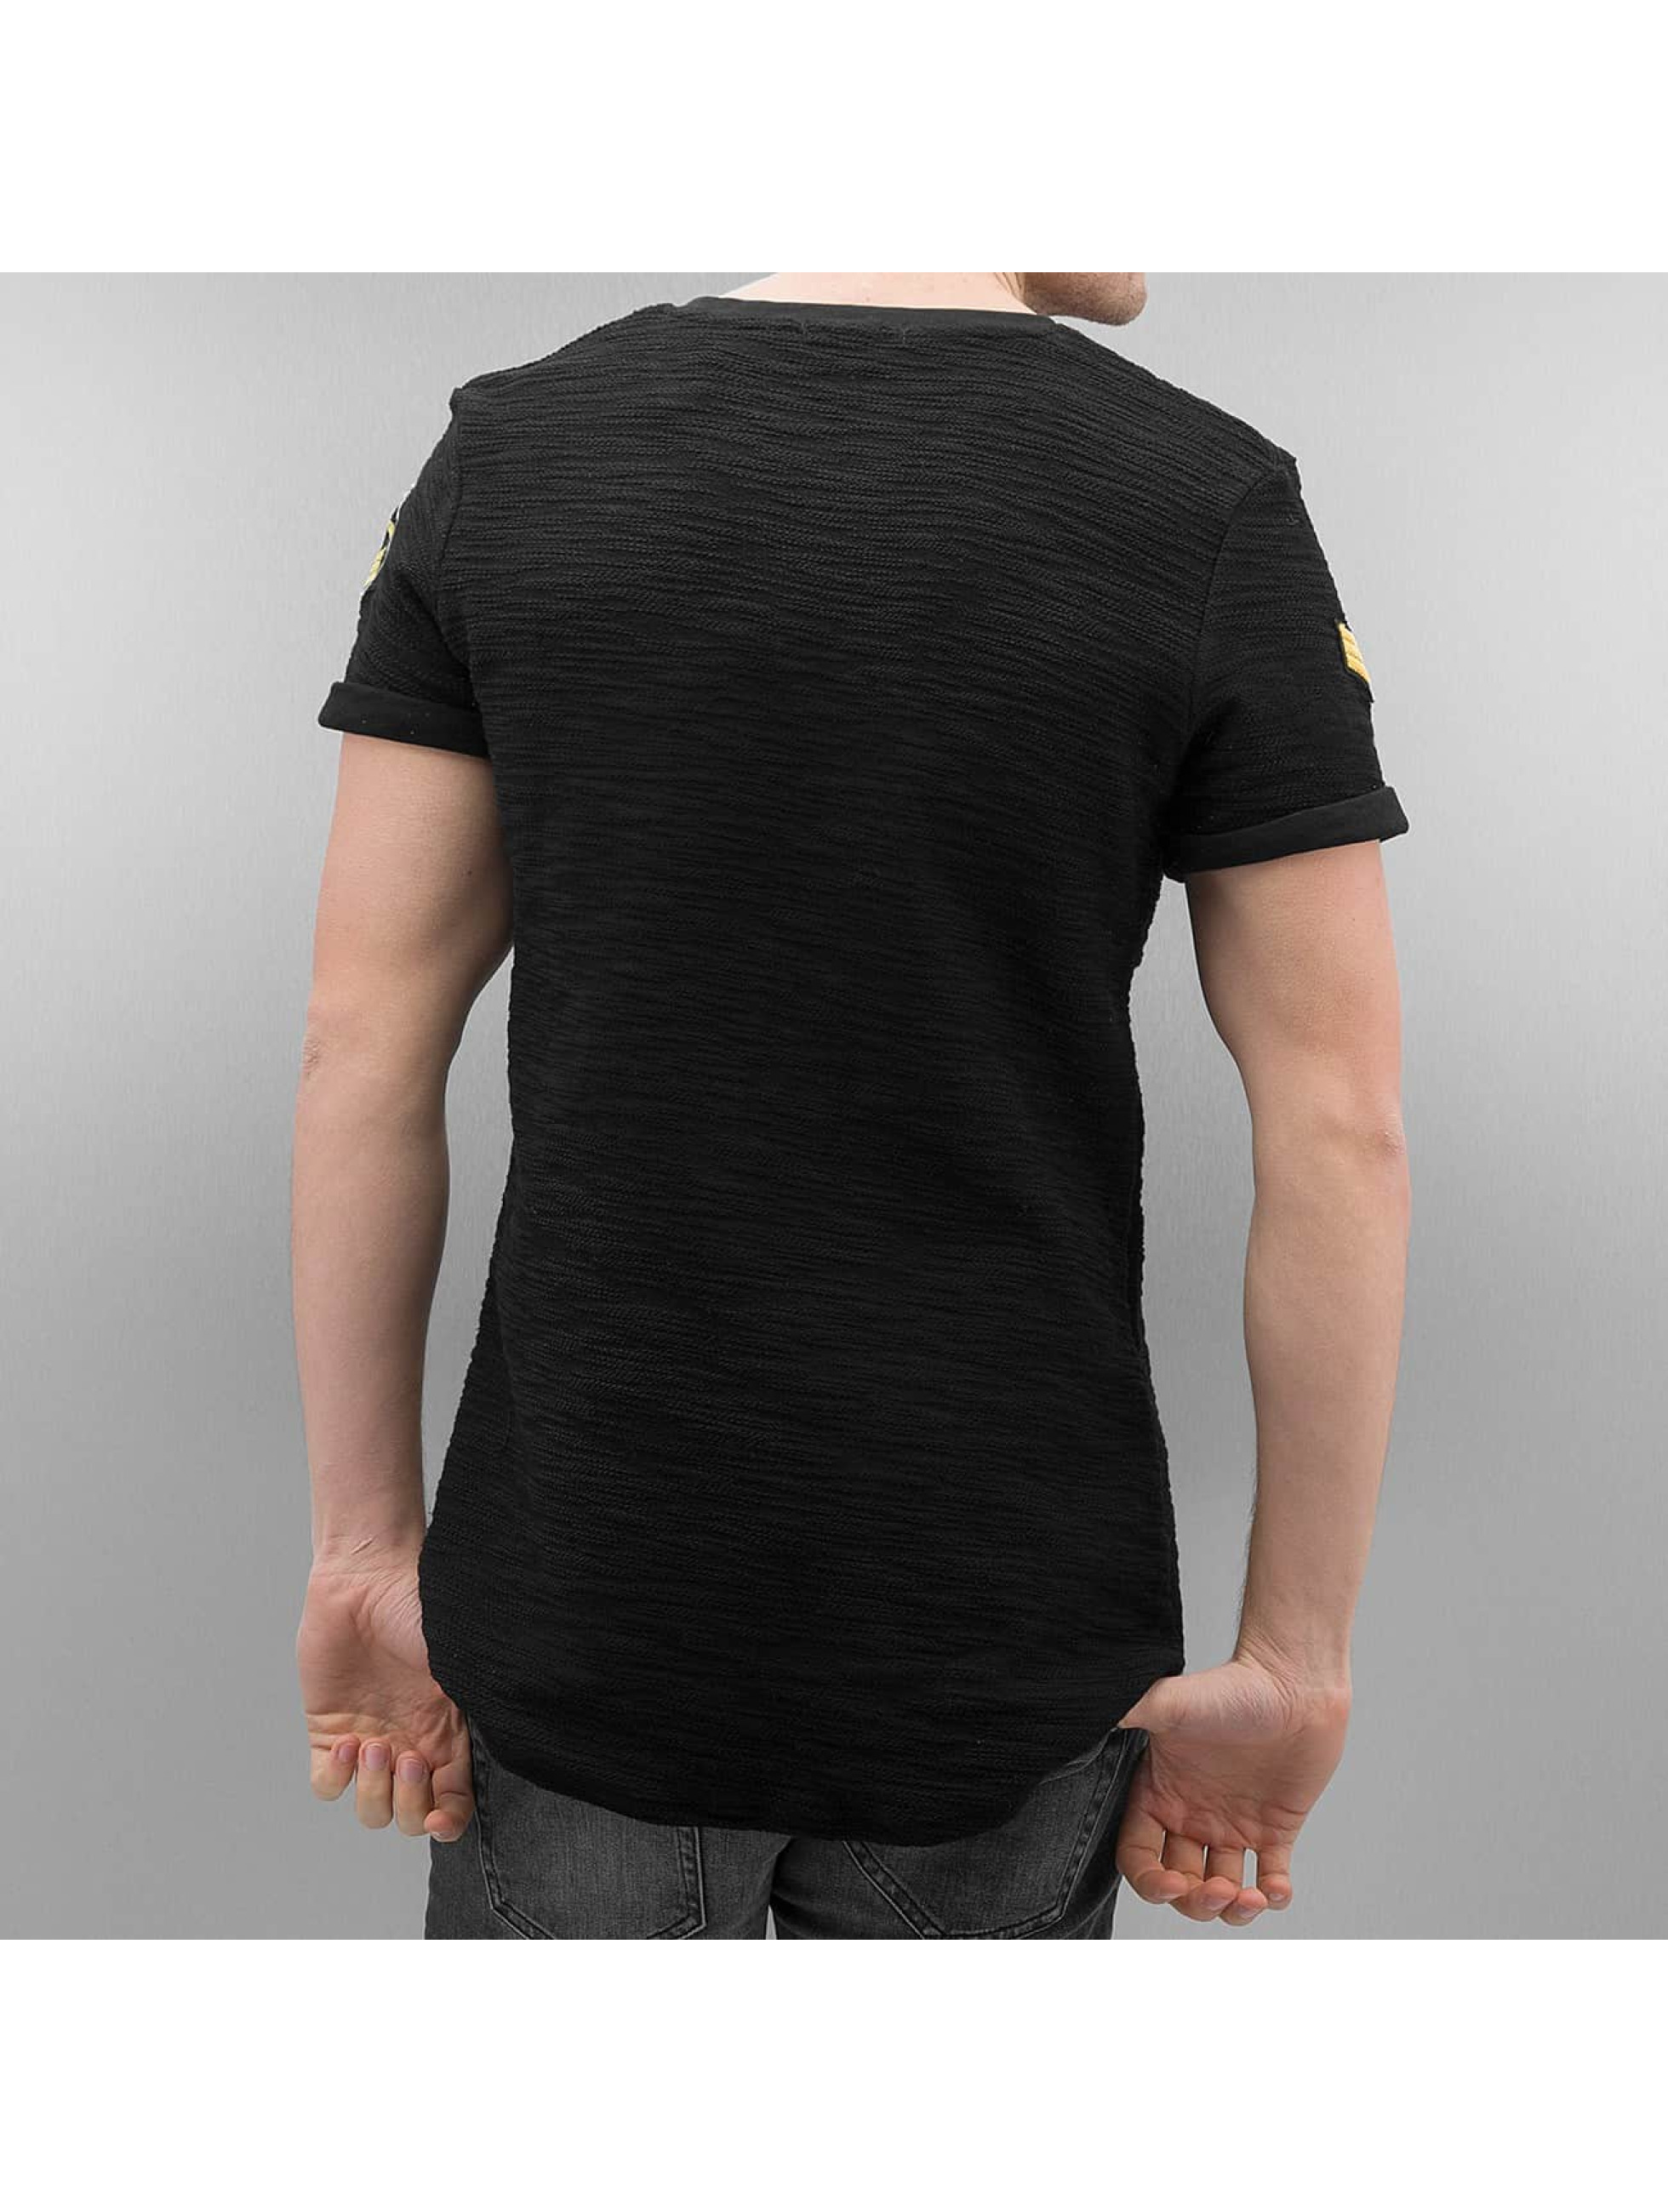 Paris Premium Tall Tees Tulsa black